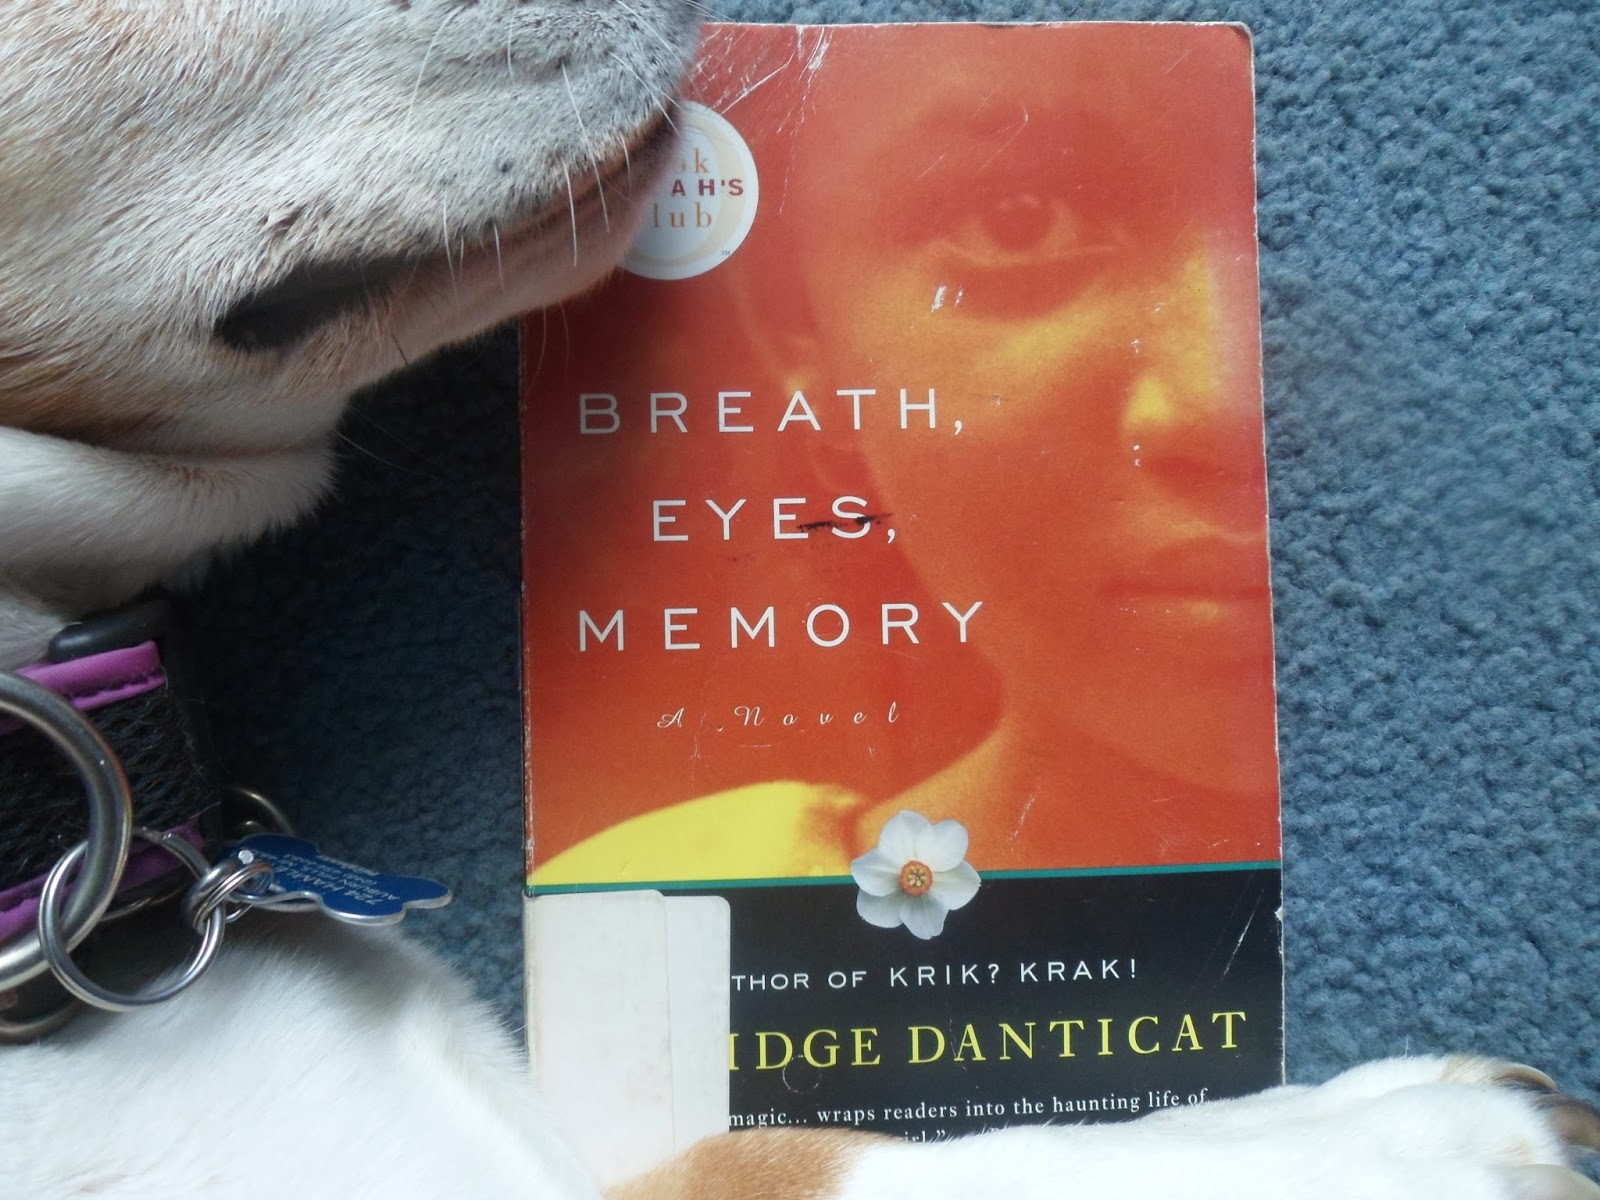 eyes breath and memory Use our free chapter-by-chapter summary and analysis of breath, eyes, memory it helps middle and high school students understand edwidge danticat's literary masterpiece.